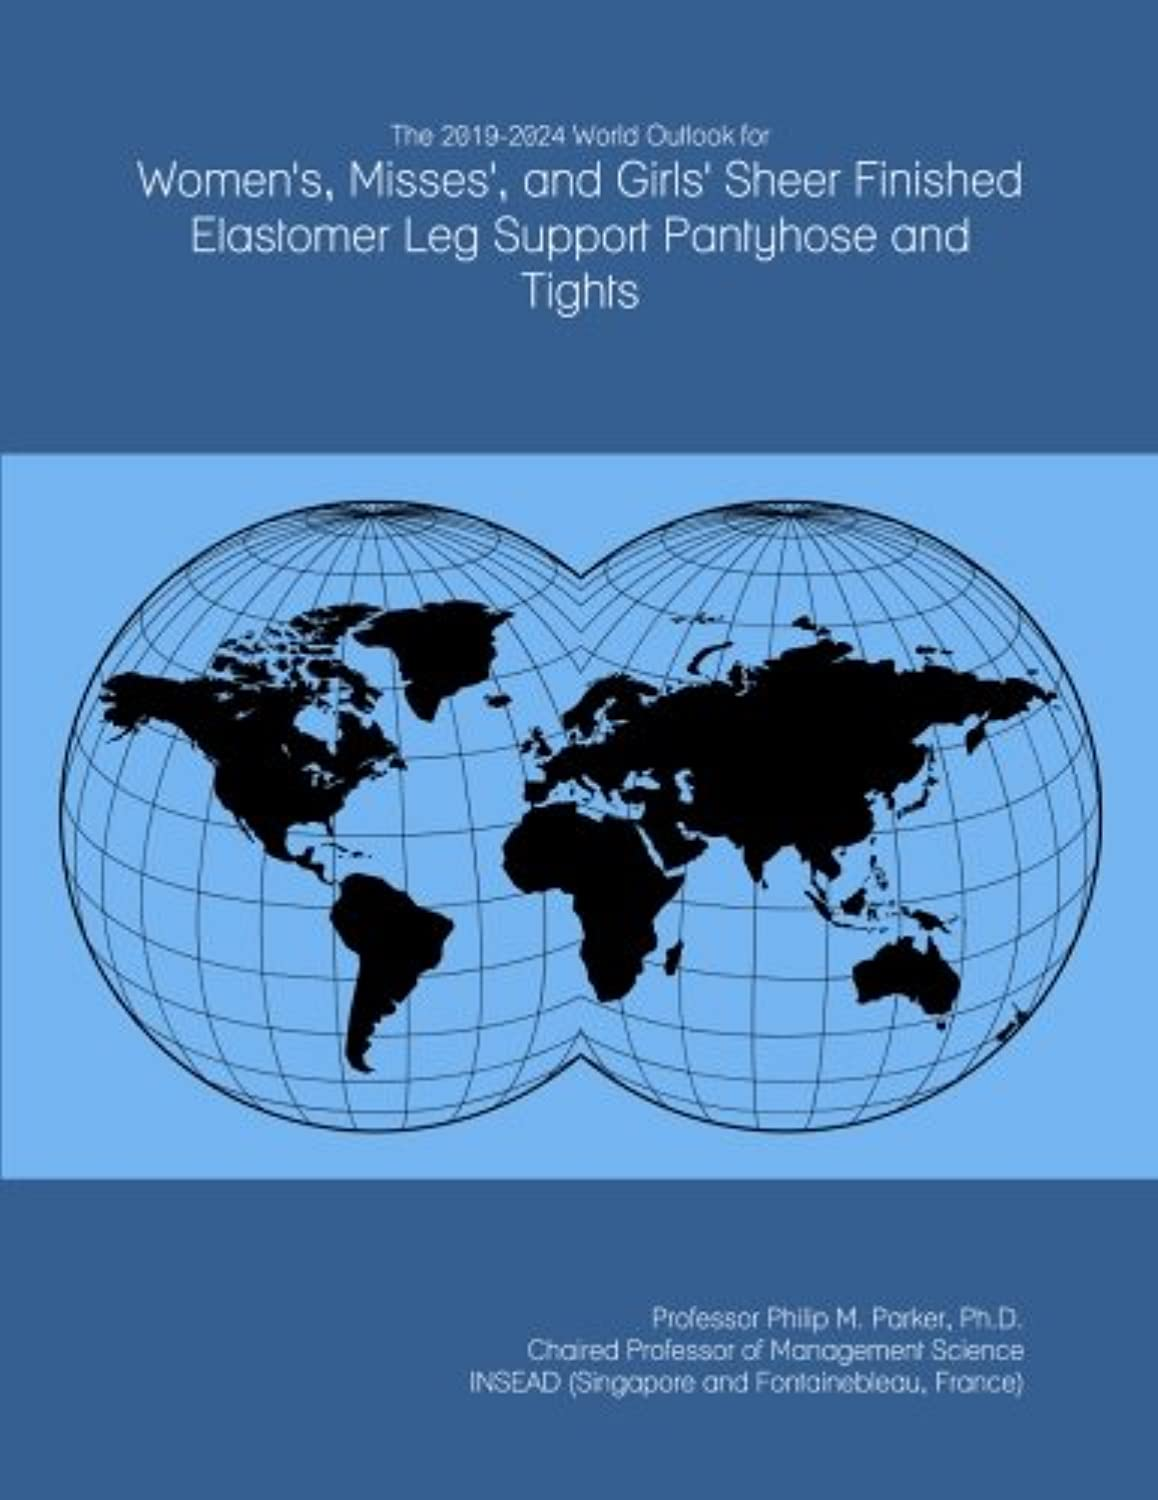 The 2019-2024 World Outlook for Women's, Misses', and Girls' Sheer Finished Elastomer Leg Support Pantyhose and Tights